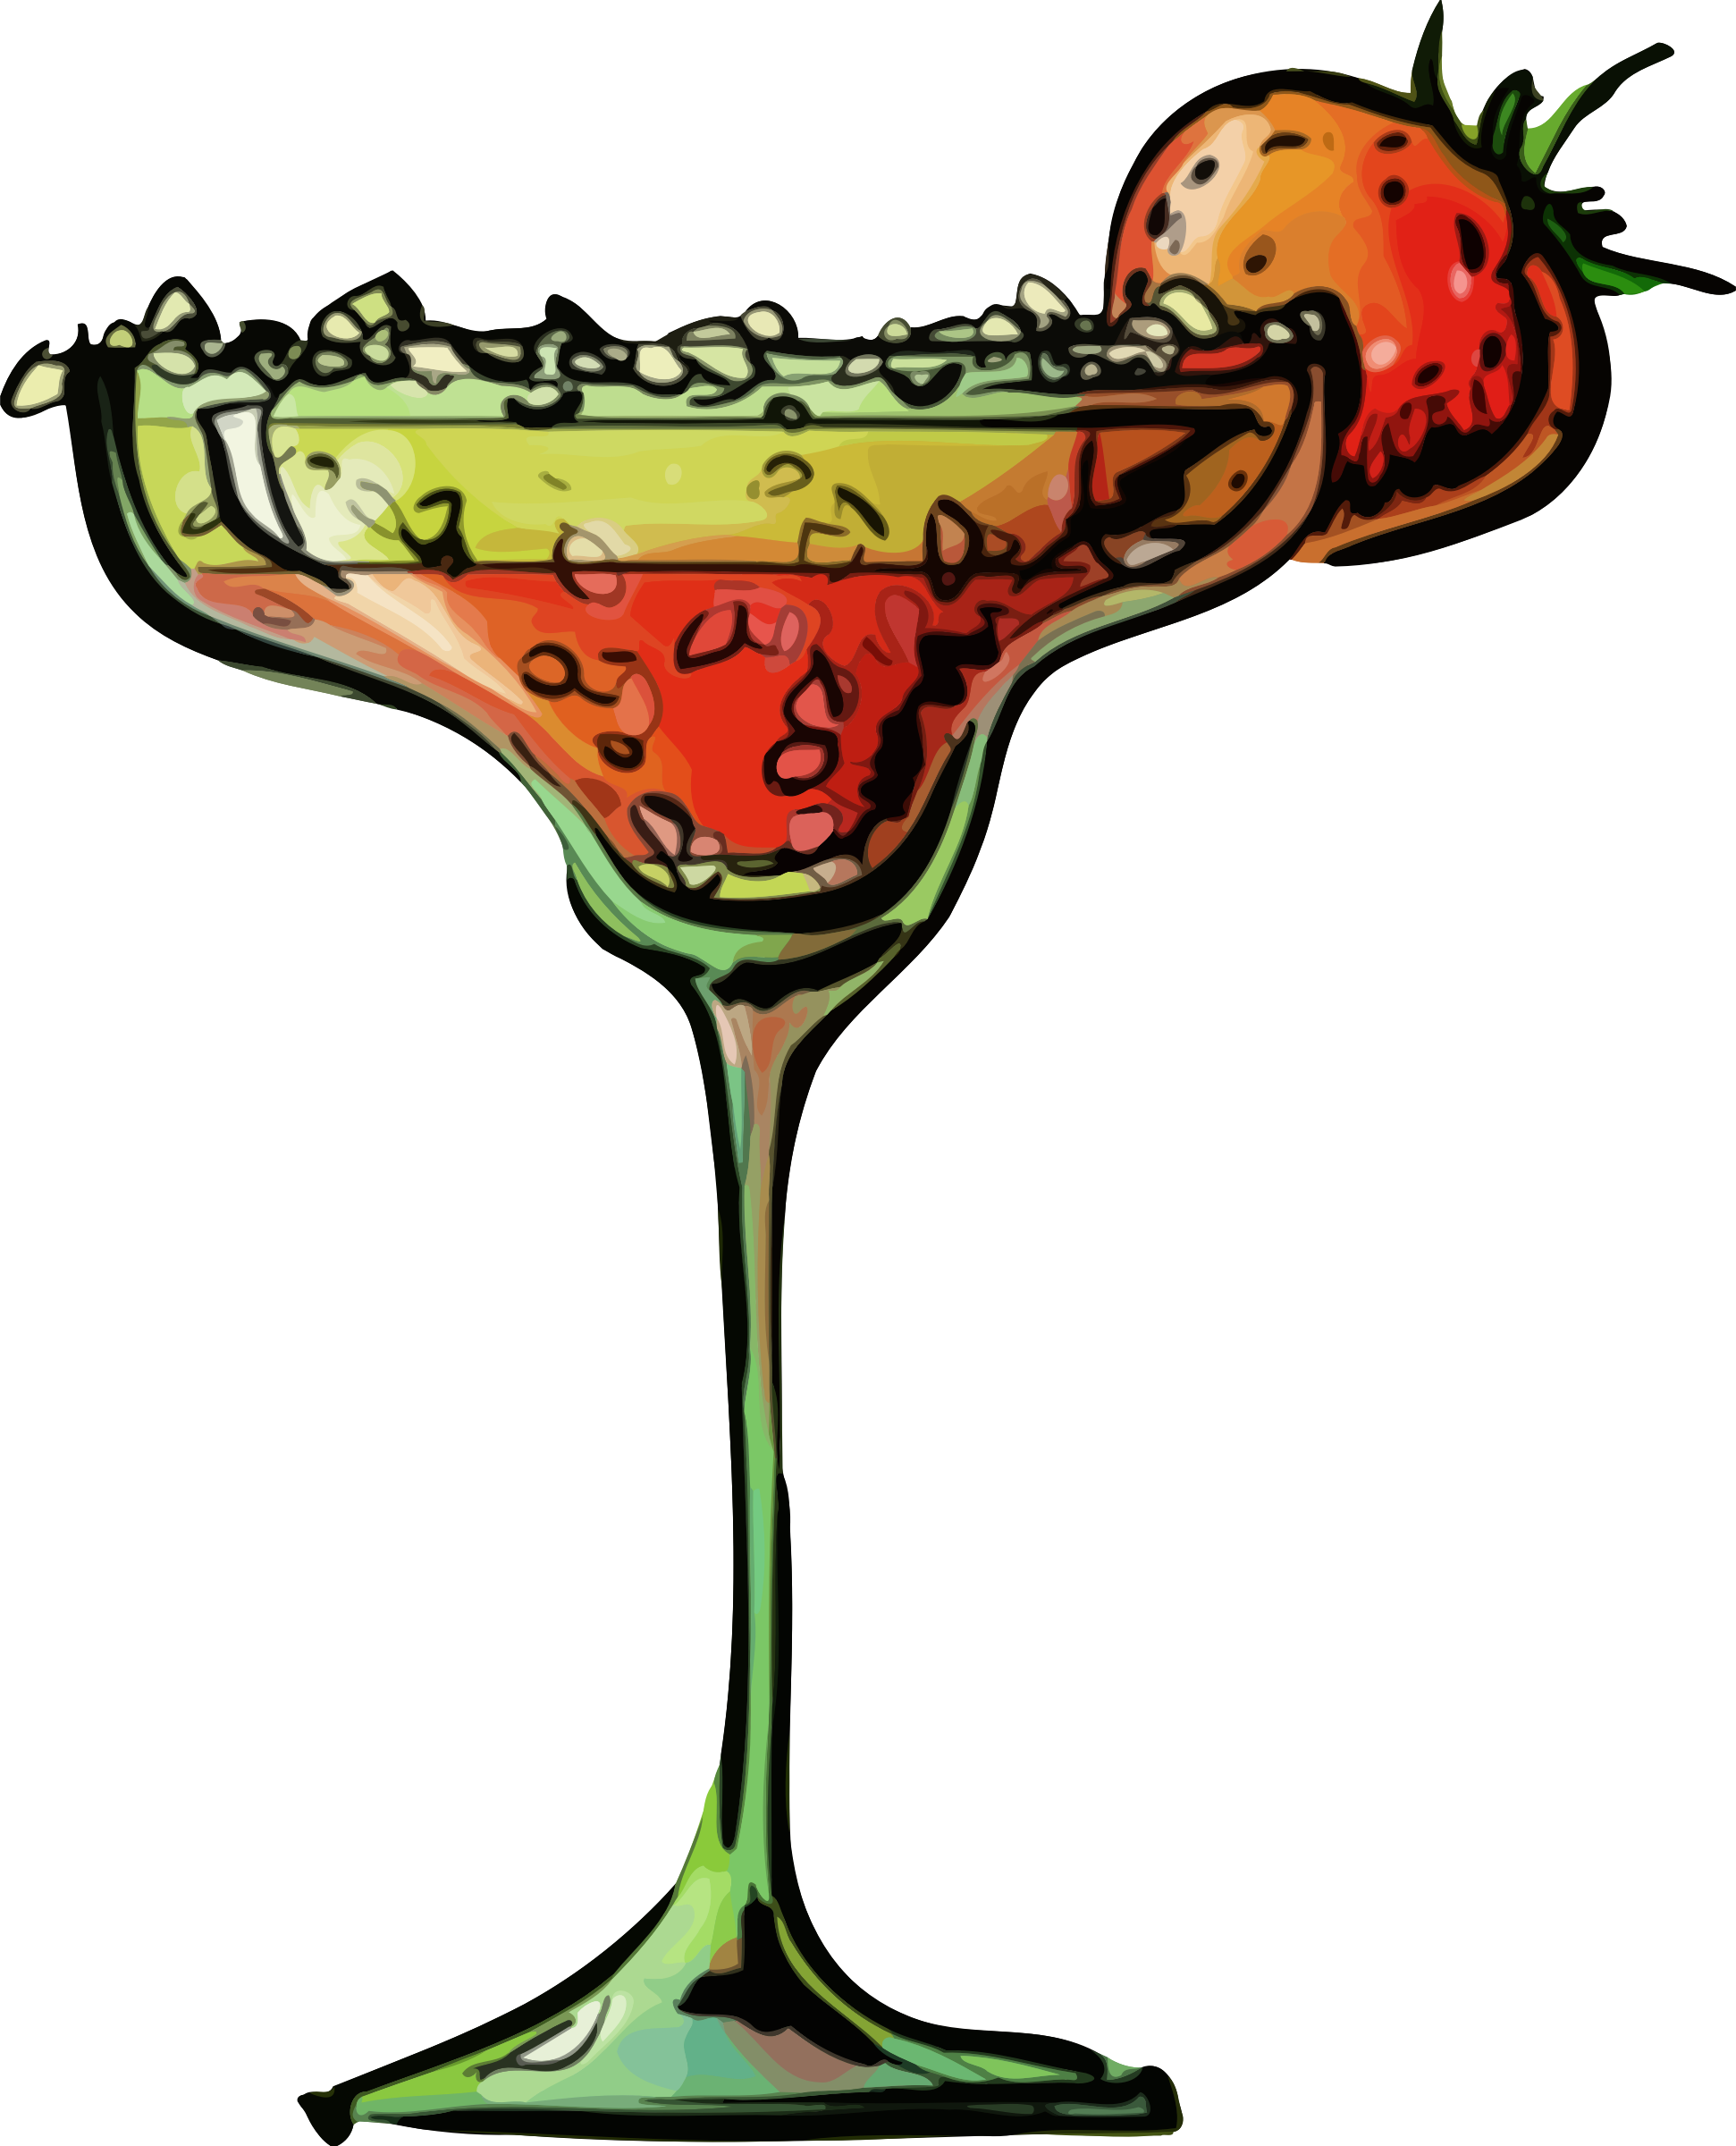 Strawberry daiquiri big image. Cocktail clipart cocktail shaker